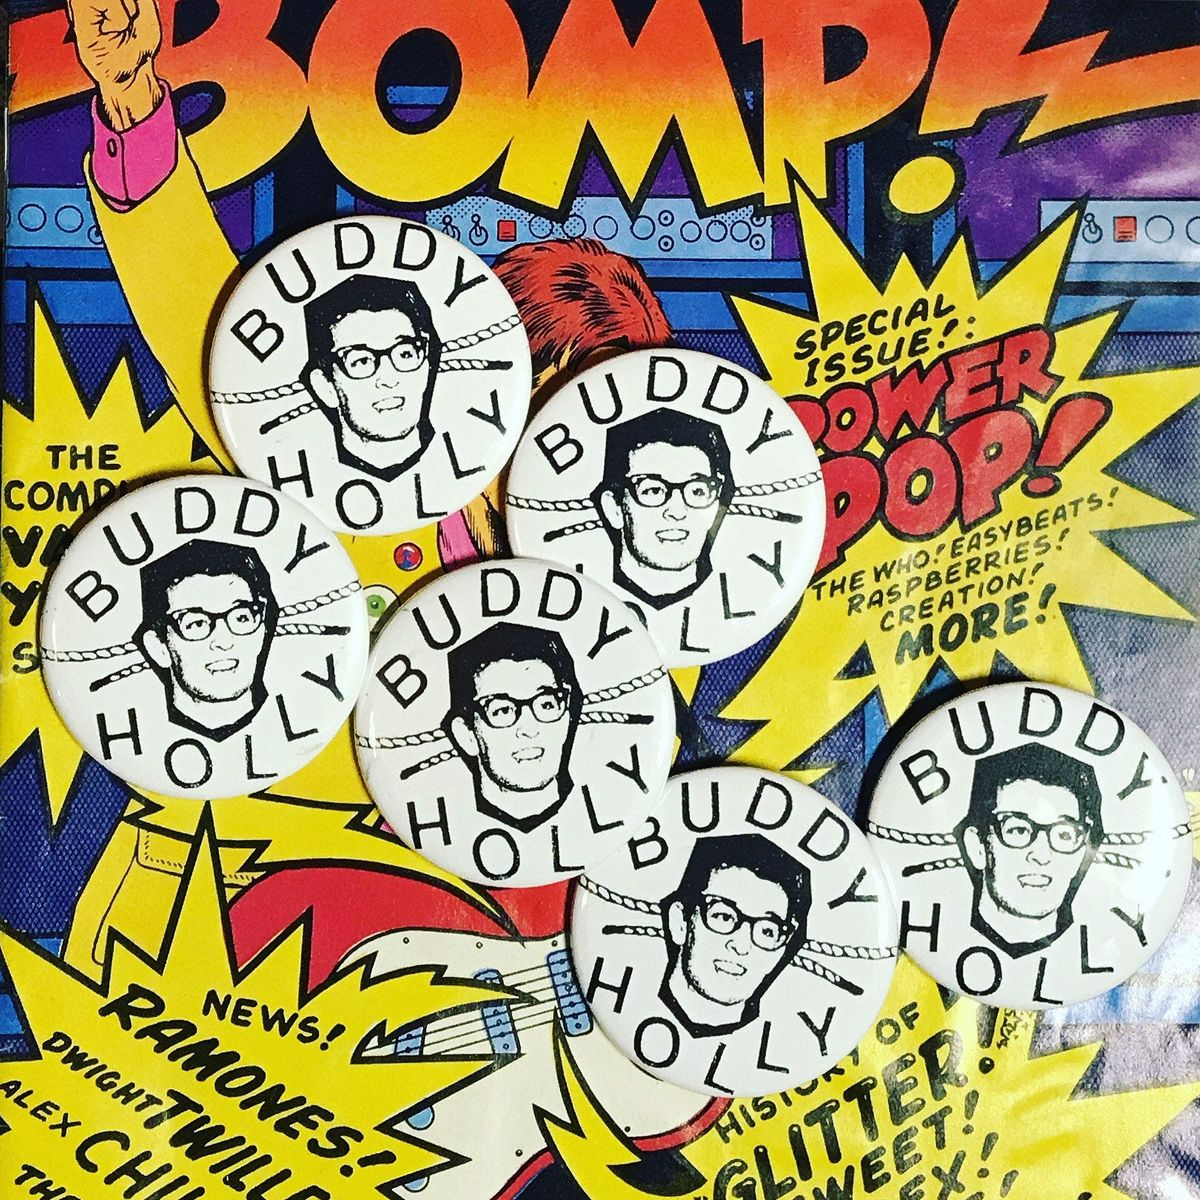 Buddy Holly pin, as seen on lowlevel